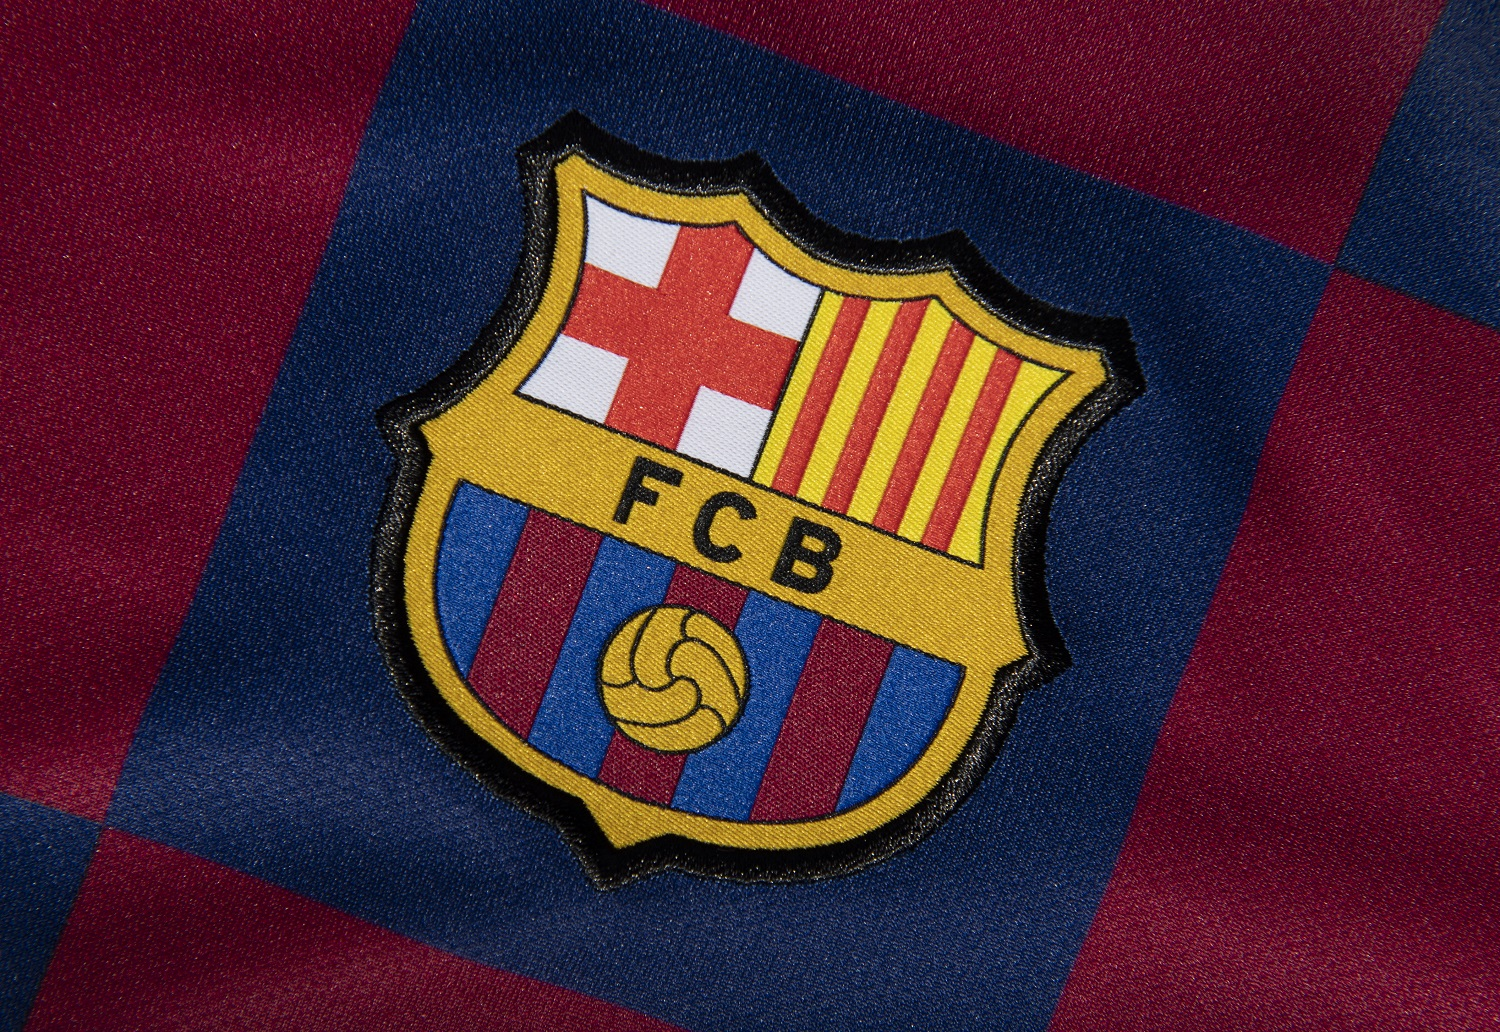 Barcelona, One of the Most Famous Teams in Sports, Is Close To Bankruptcy